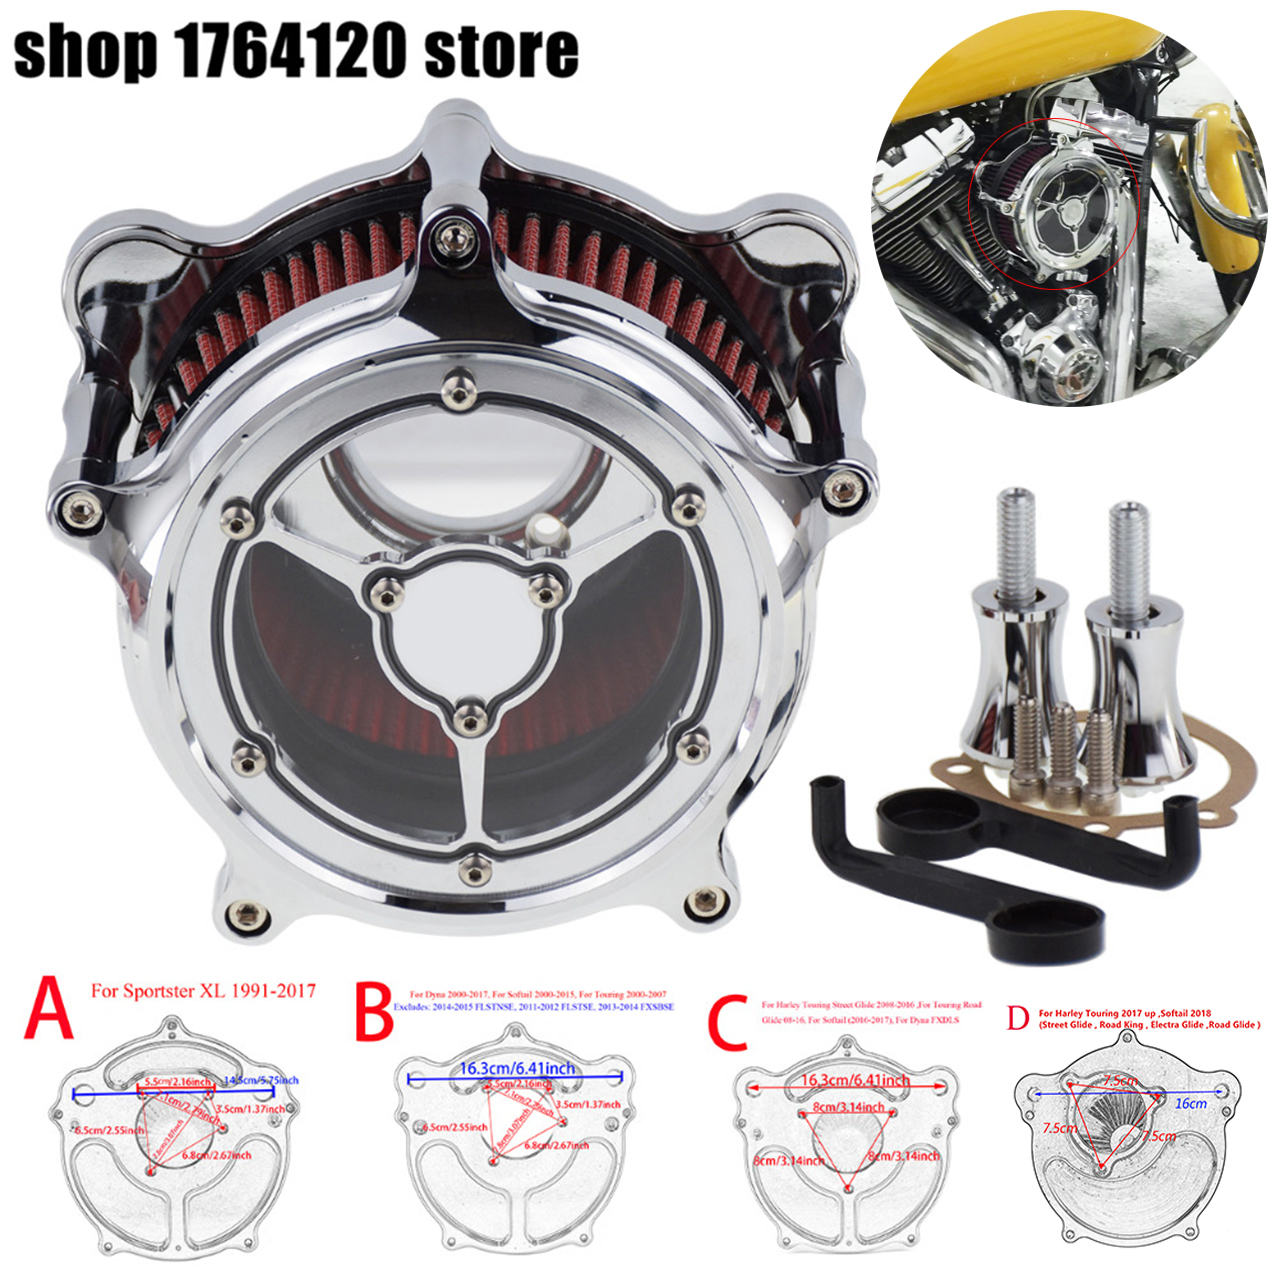 Motorcycle Clarity Air Filter Cleaner Intake Kit Chrome For Harley Sportster Dyna Touring Street Glide Softail 00-18